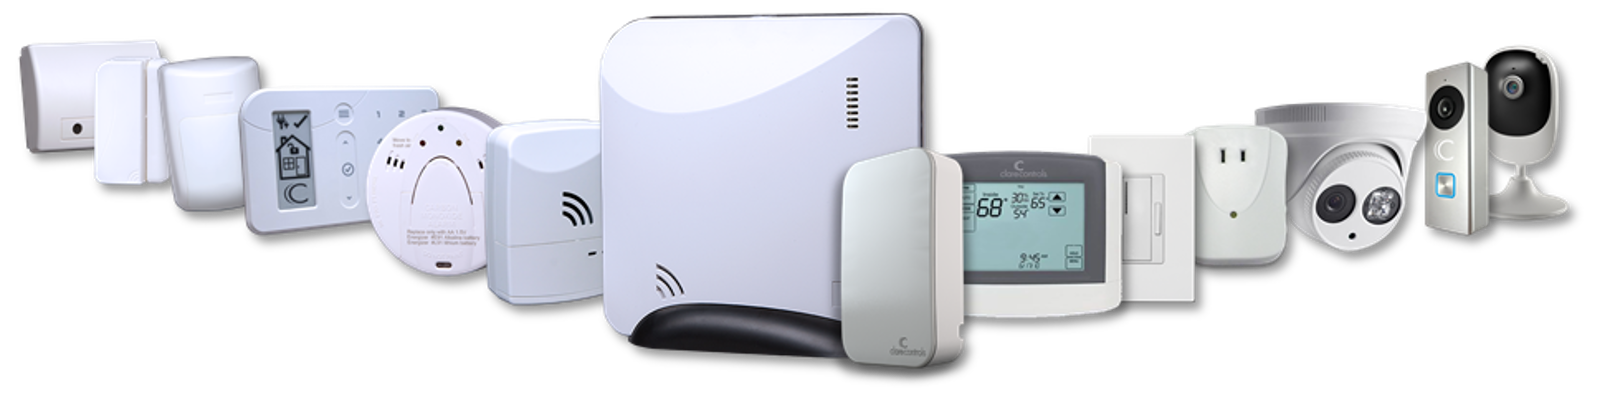 Clare Best Smart Home Automation & Security Products